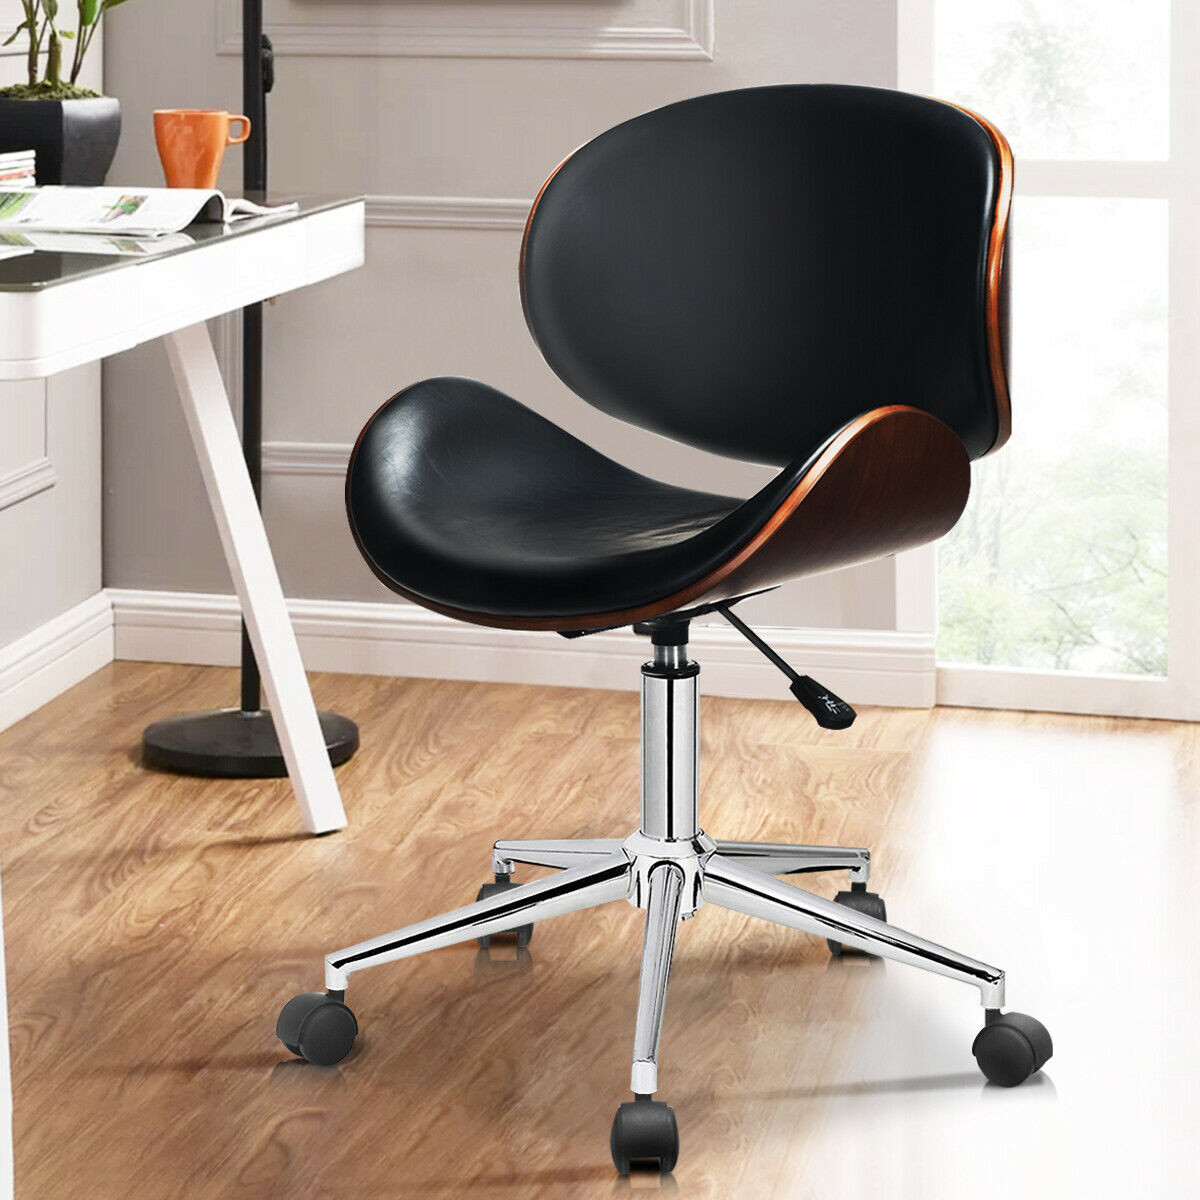 Details About Bentwood Mid Century Executive Height Adjustable Swivel Office Chair Modern